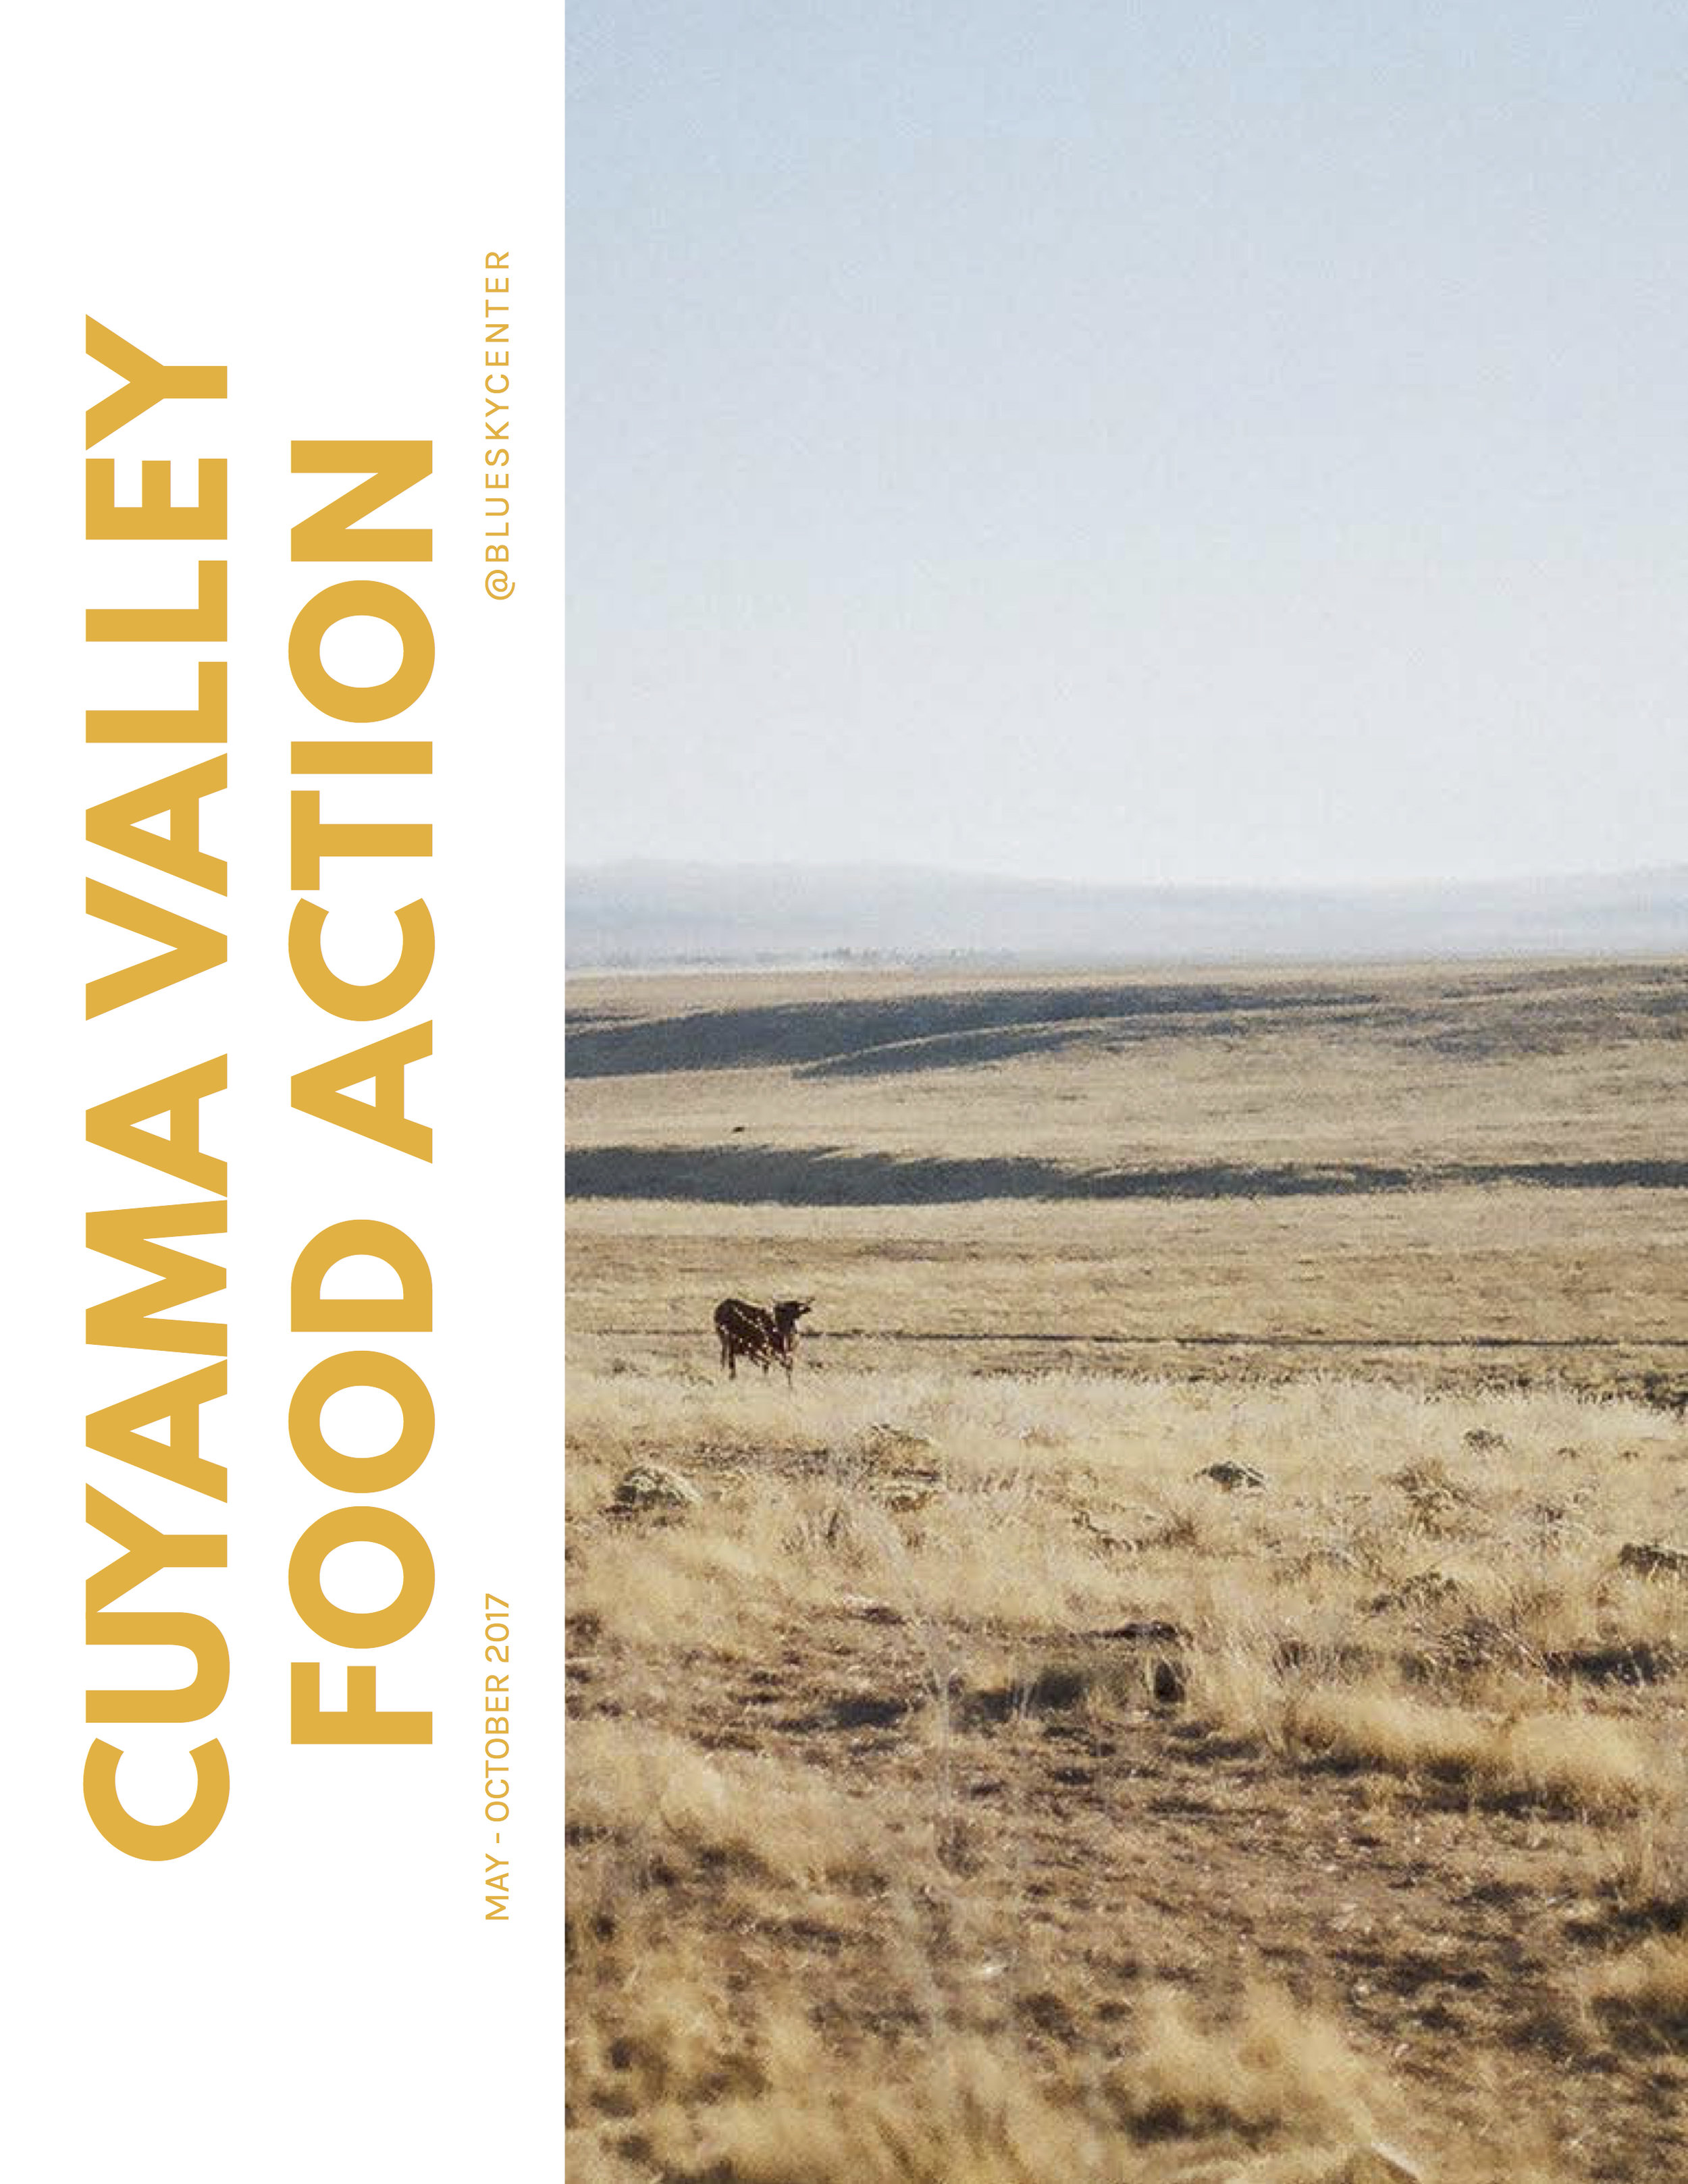 Cuyama Valley 2017 Food Action Report